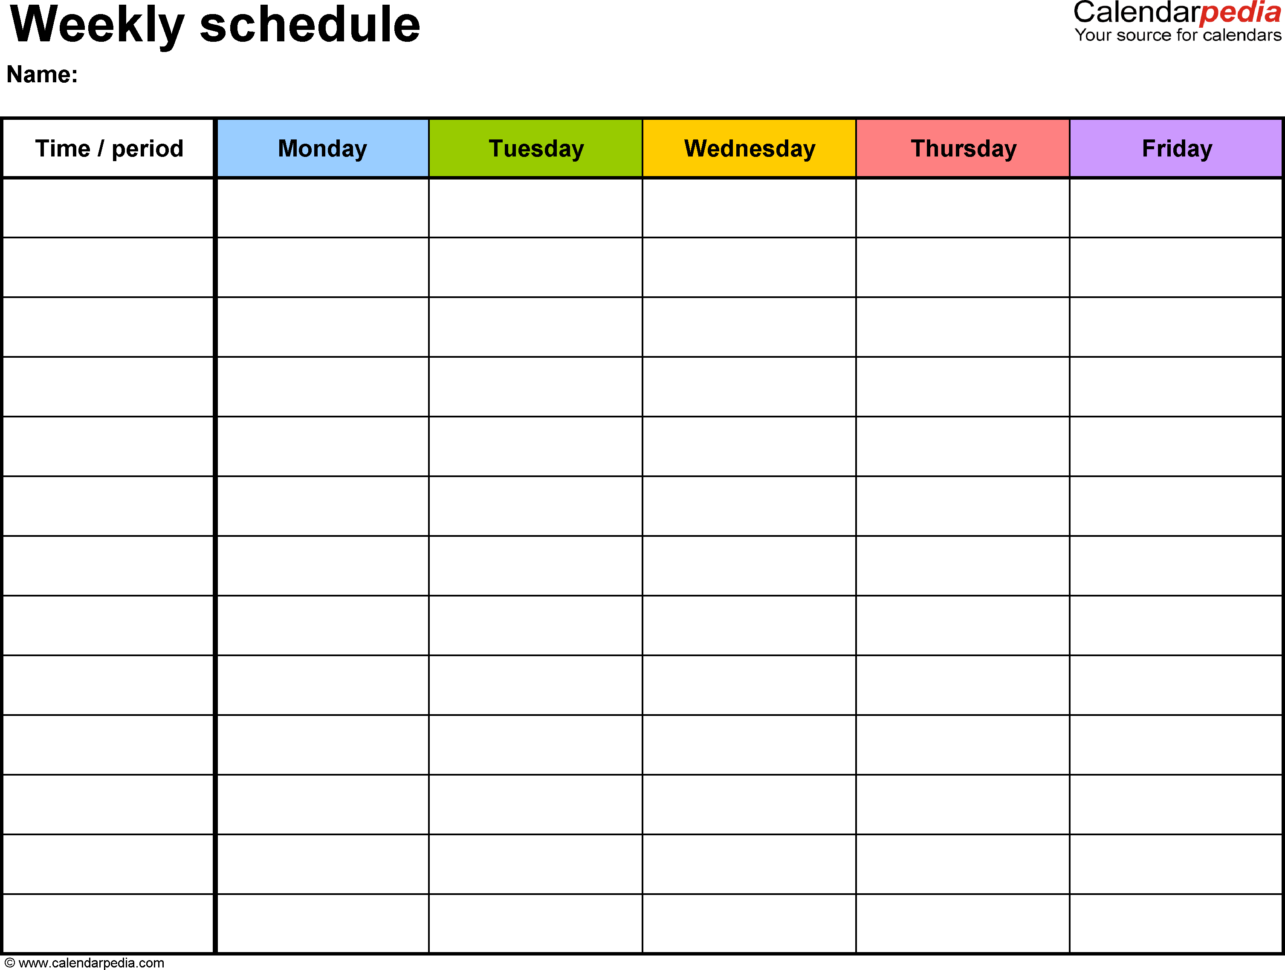 Free Weekly Schedule Templates For Excel   18 Templates To Monthly Employee Schedule Template Excel